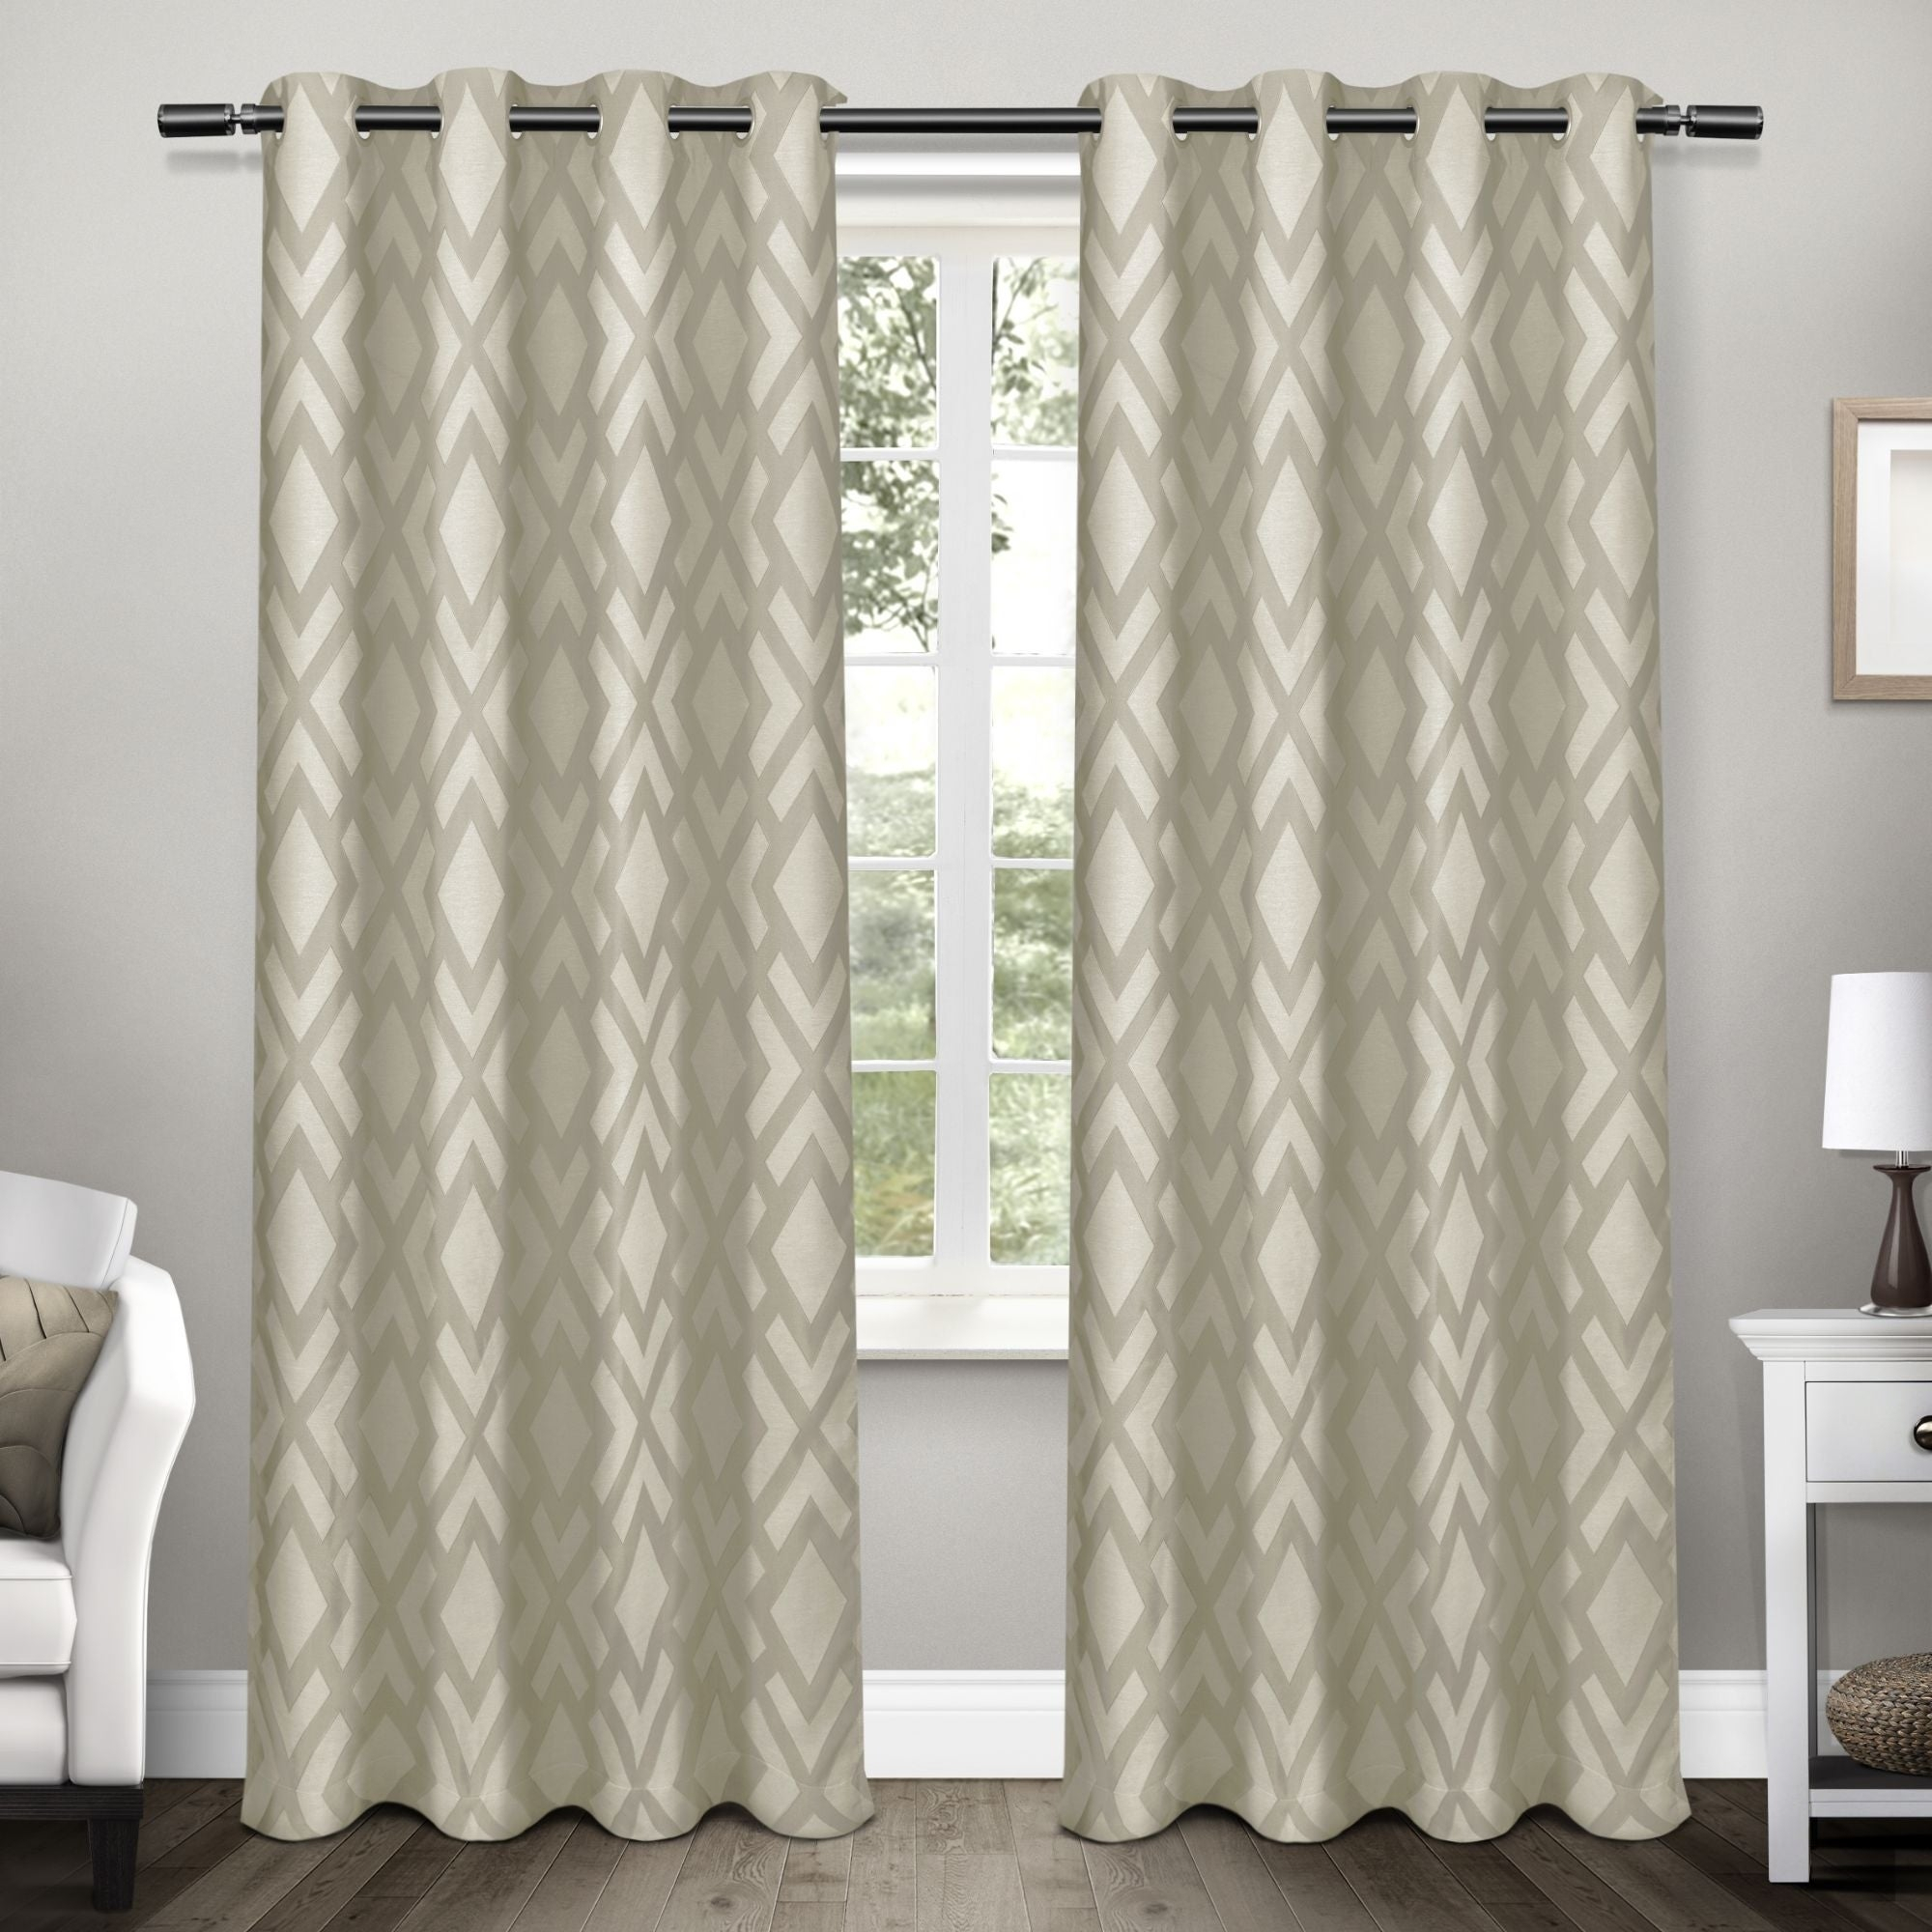 Ati Home Easton Thermal Woven Blackout Grommet Top Curtain Panel Pair Throughout Thermal Woven Blackout Grommet Top Curtain Panel Pairs (View 24 of 30)